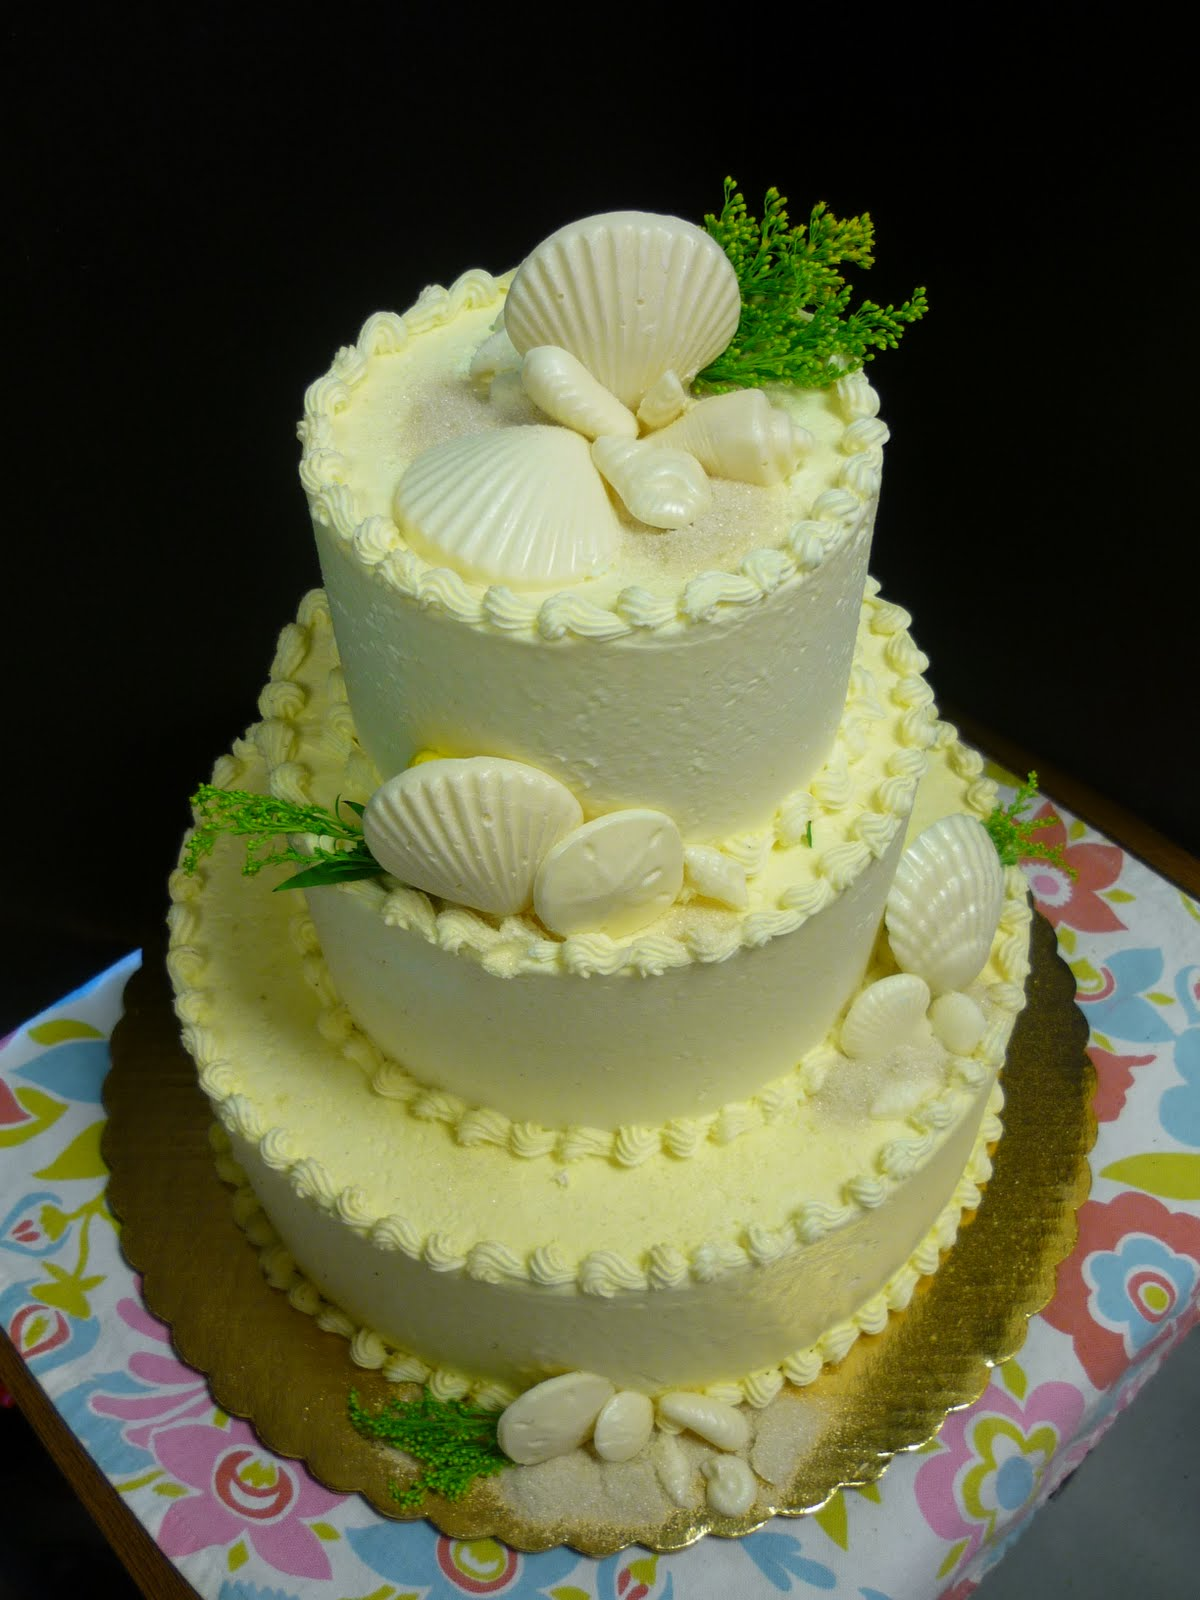 Artisan Bake Shop Wedding Cake Buttercream Tiers with